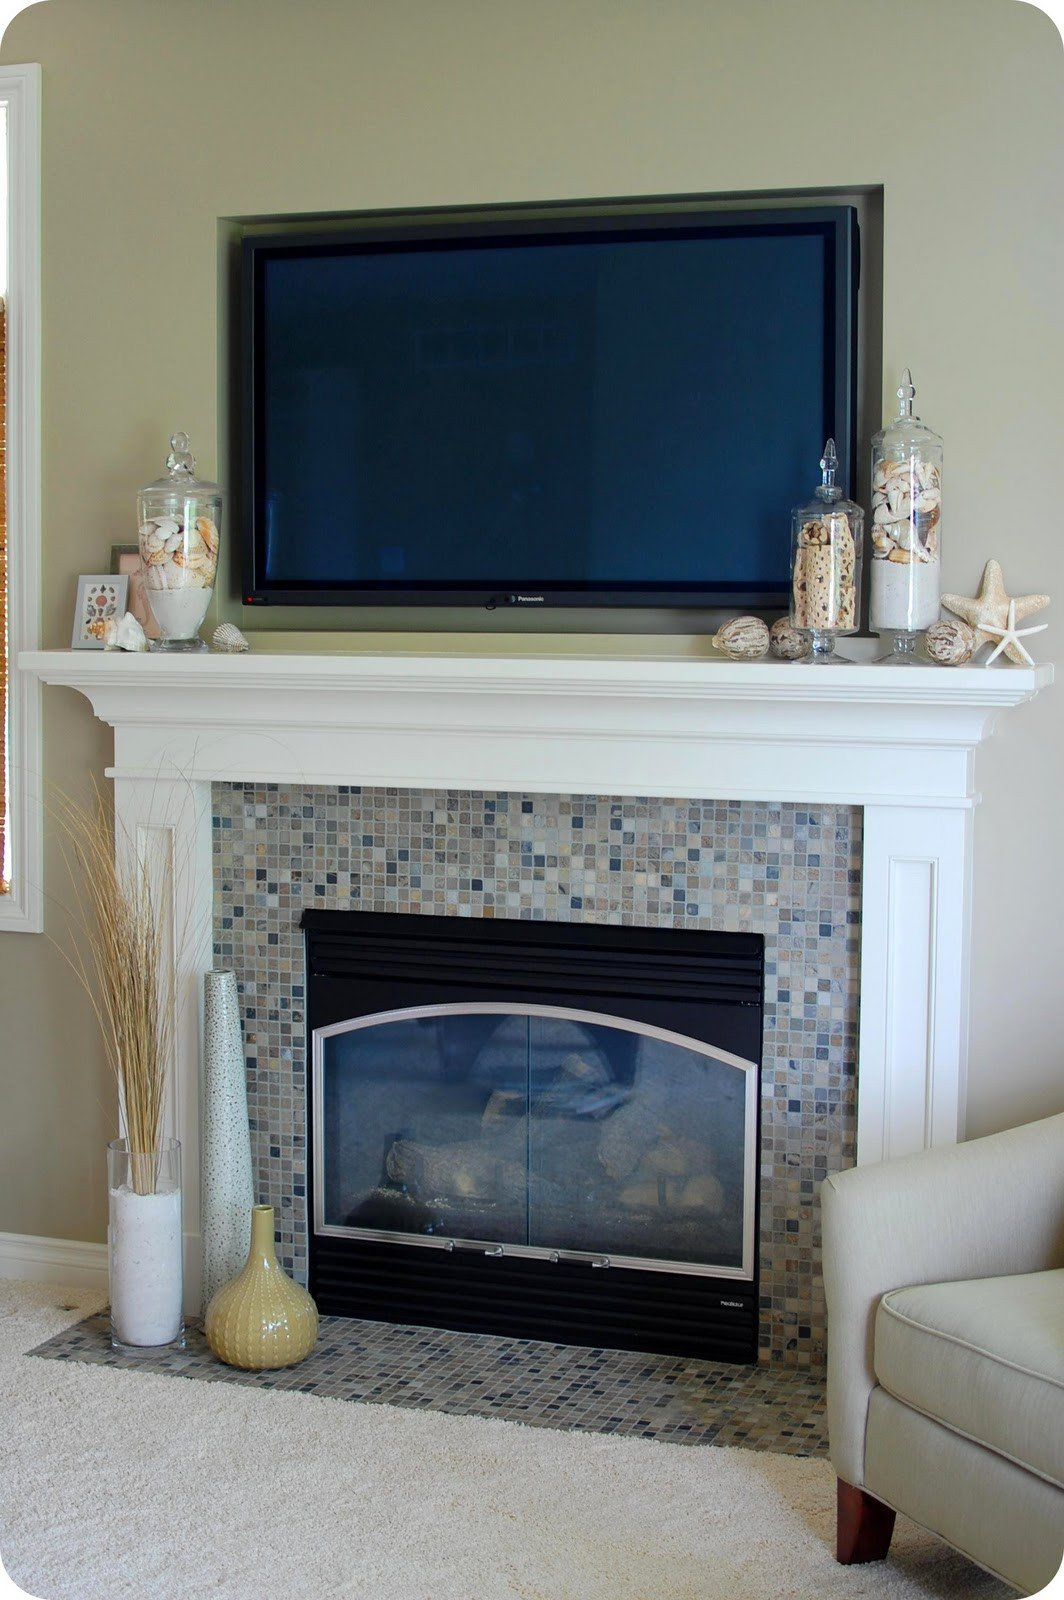 Fireplace Mantel Decor with Tv Inspirational 33 Shades Of Green Decorating Around the Tv